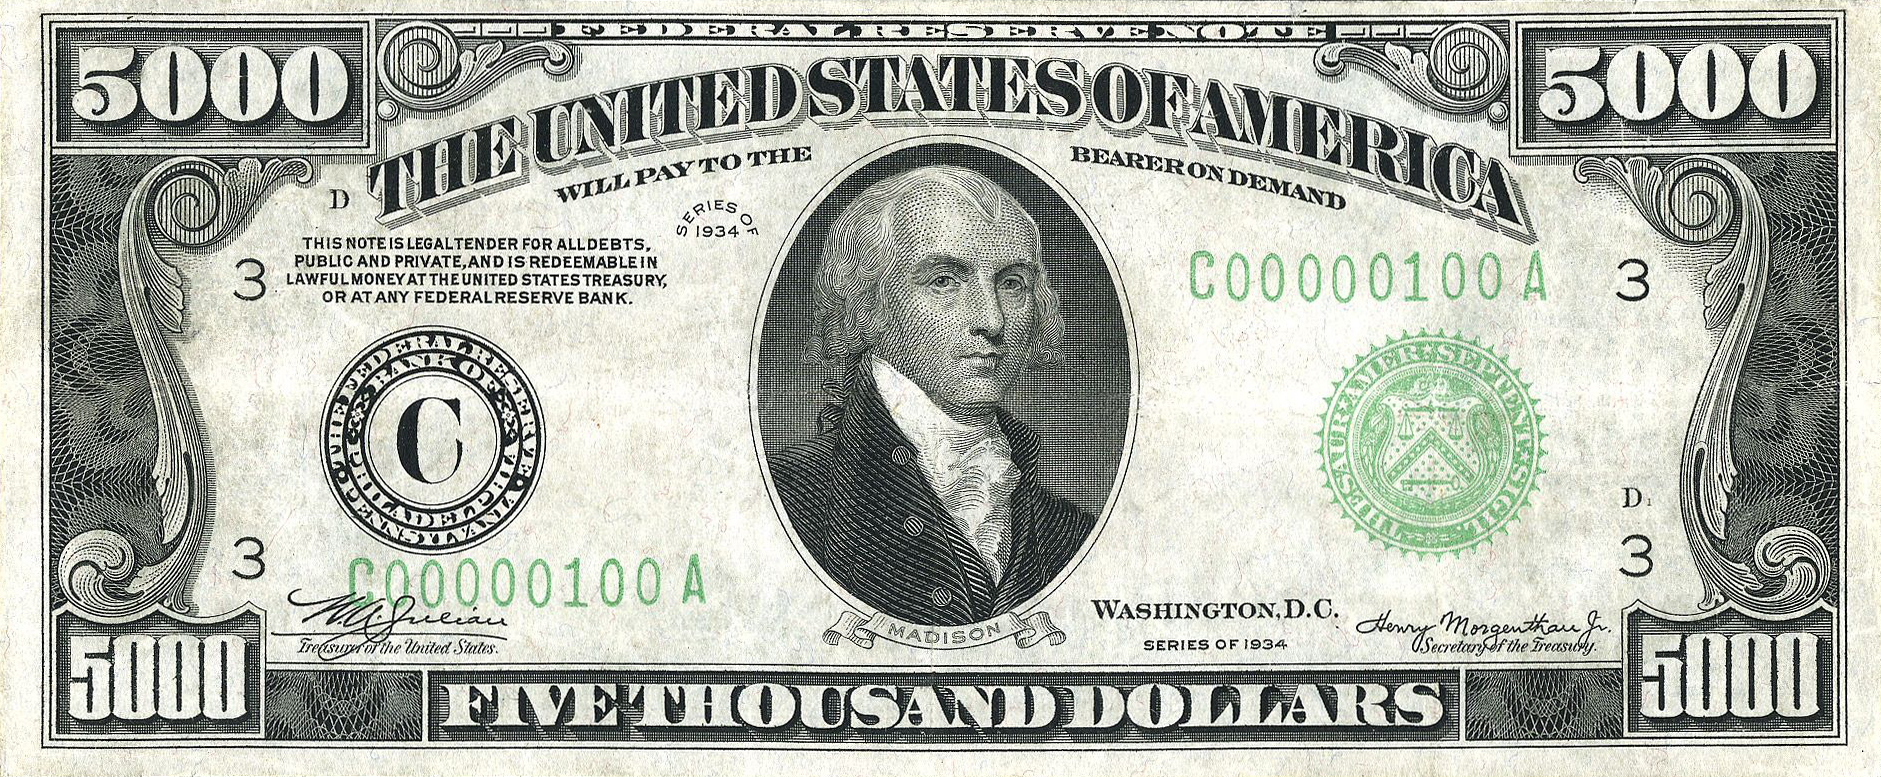 File:US $5000 1934 Federal Reserve Note.jpg